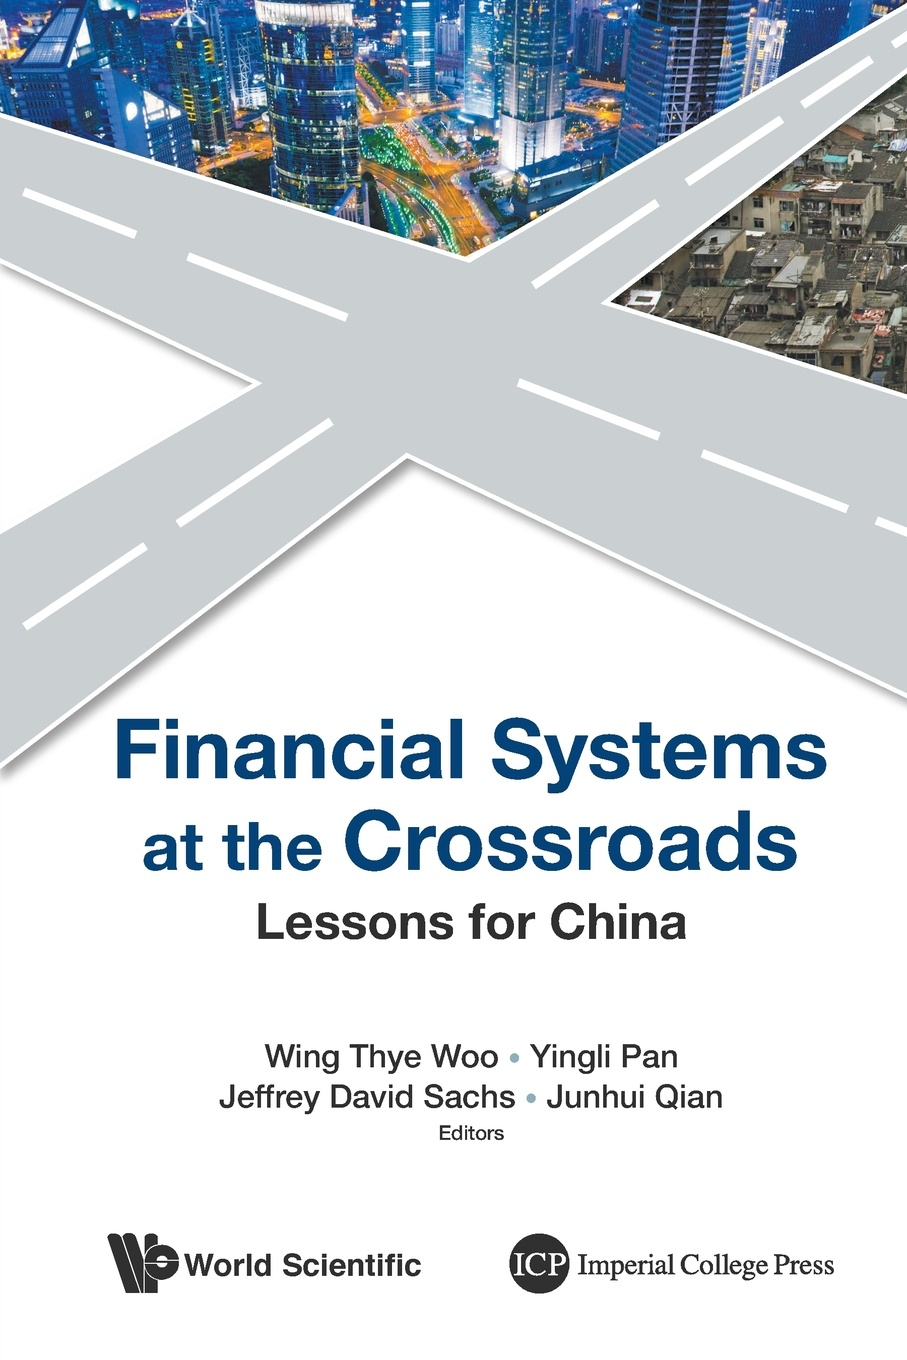 Financial Systems at the Crossroads. Lessons for China master of the crossroads